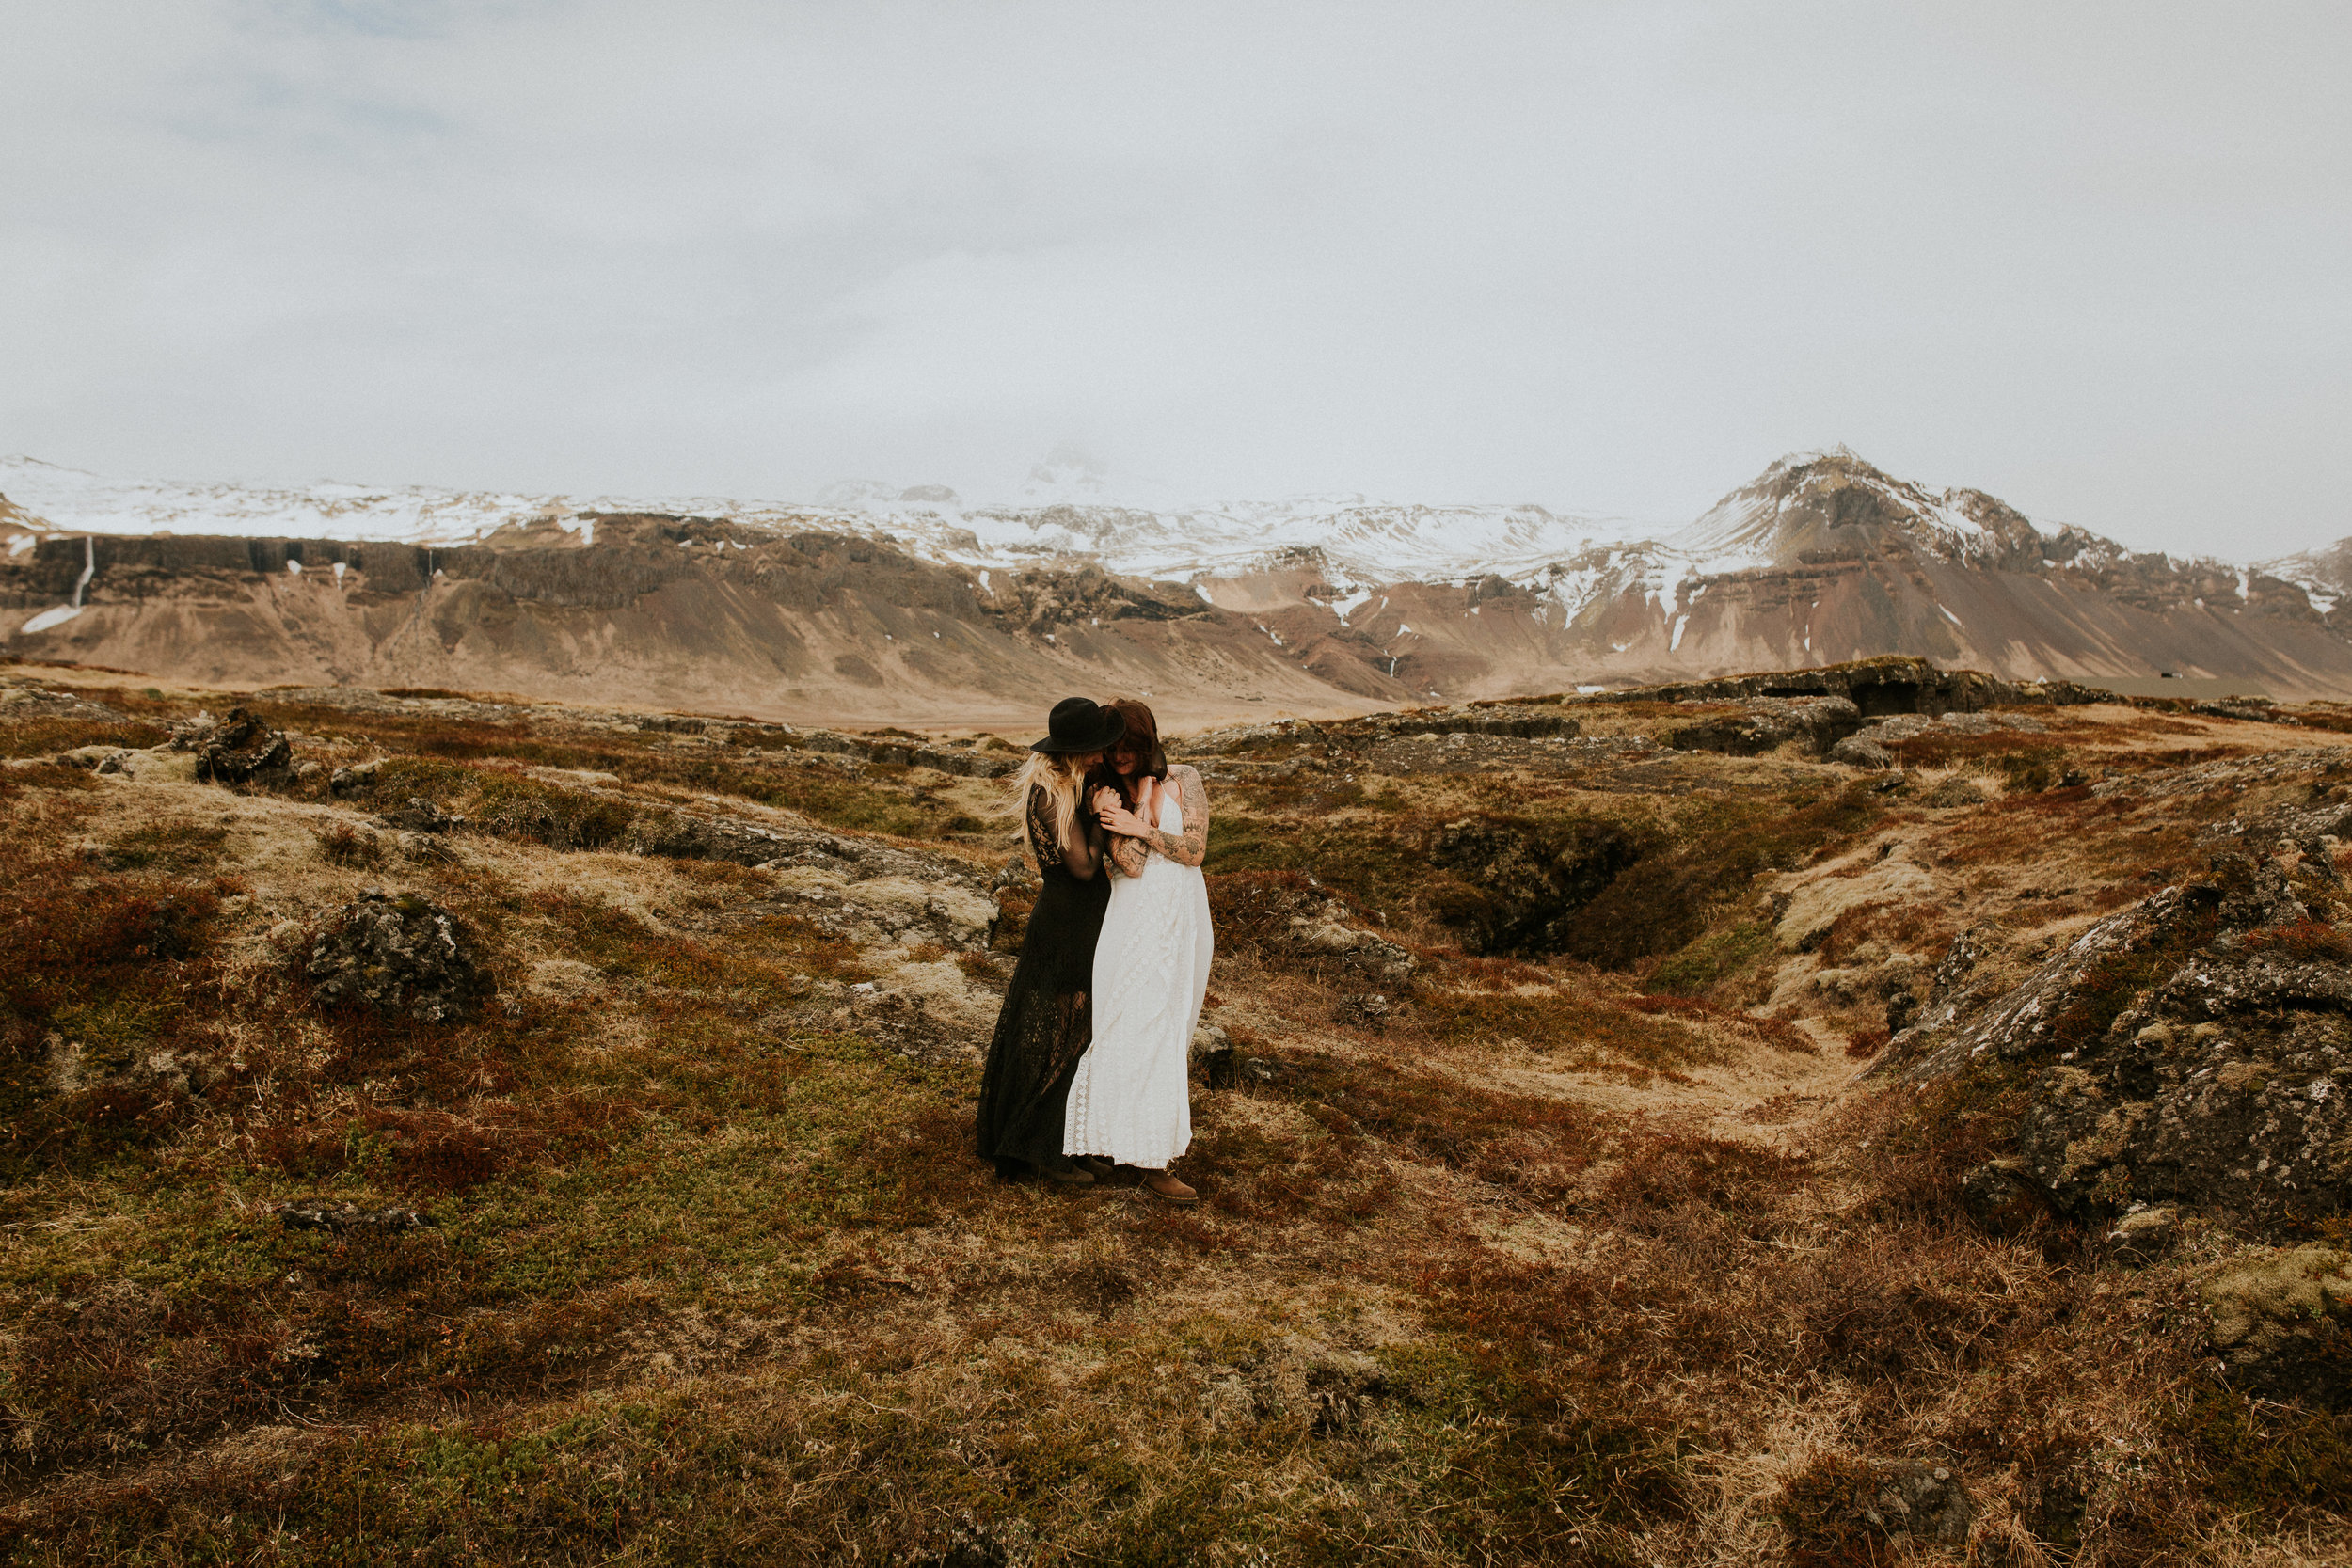 iceland lesbian elopement intimate wedding photographer breeanna lasher